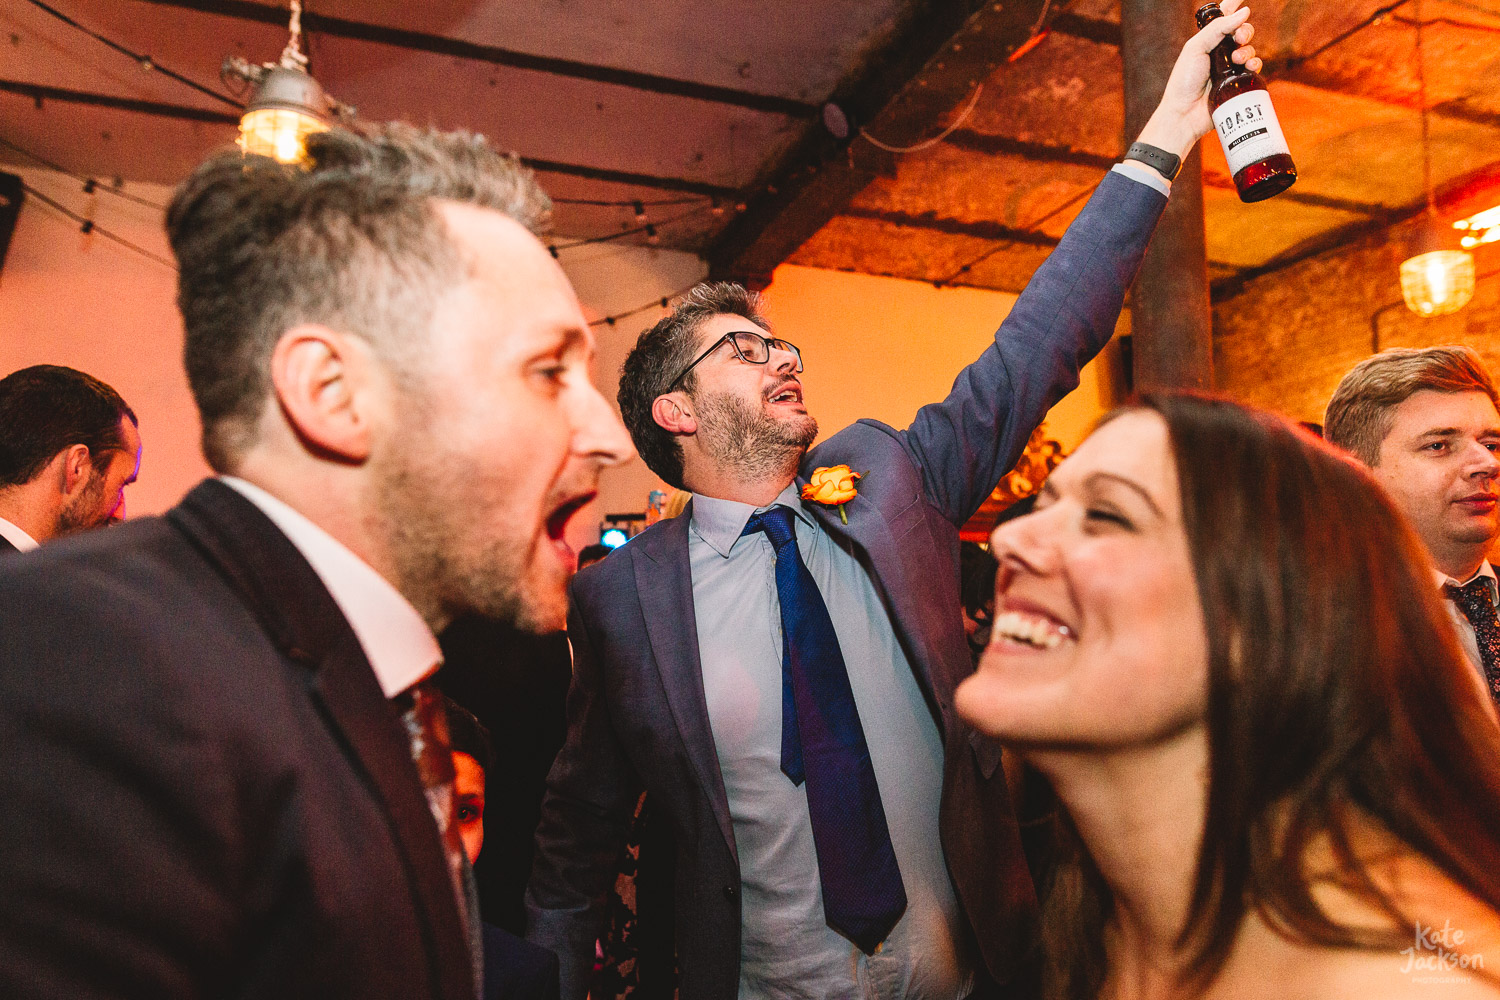 Fun party photo of guest dancing and singing holding up a bottle of craft beet at alternative wedding venue Clapton Country Club in London